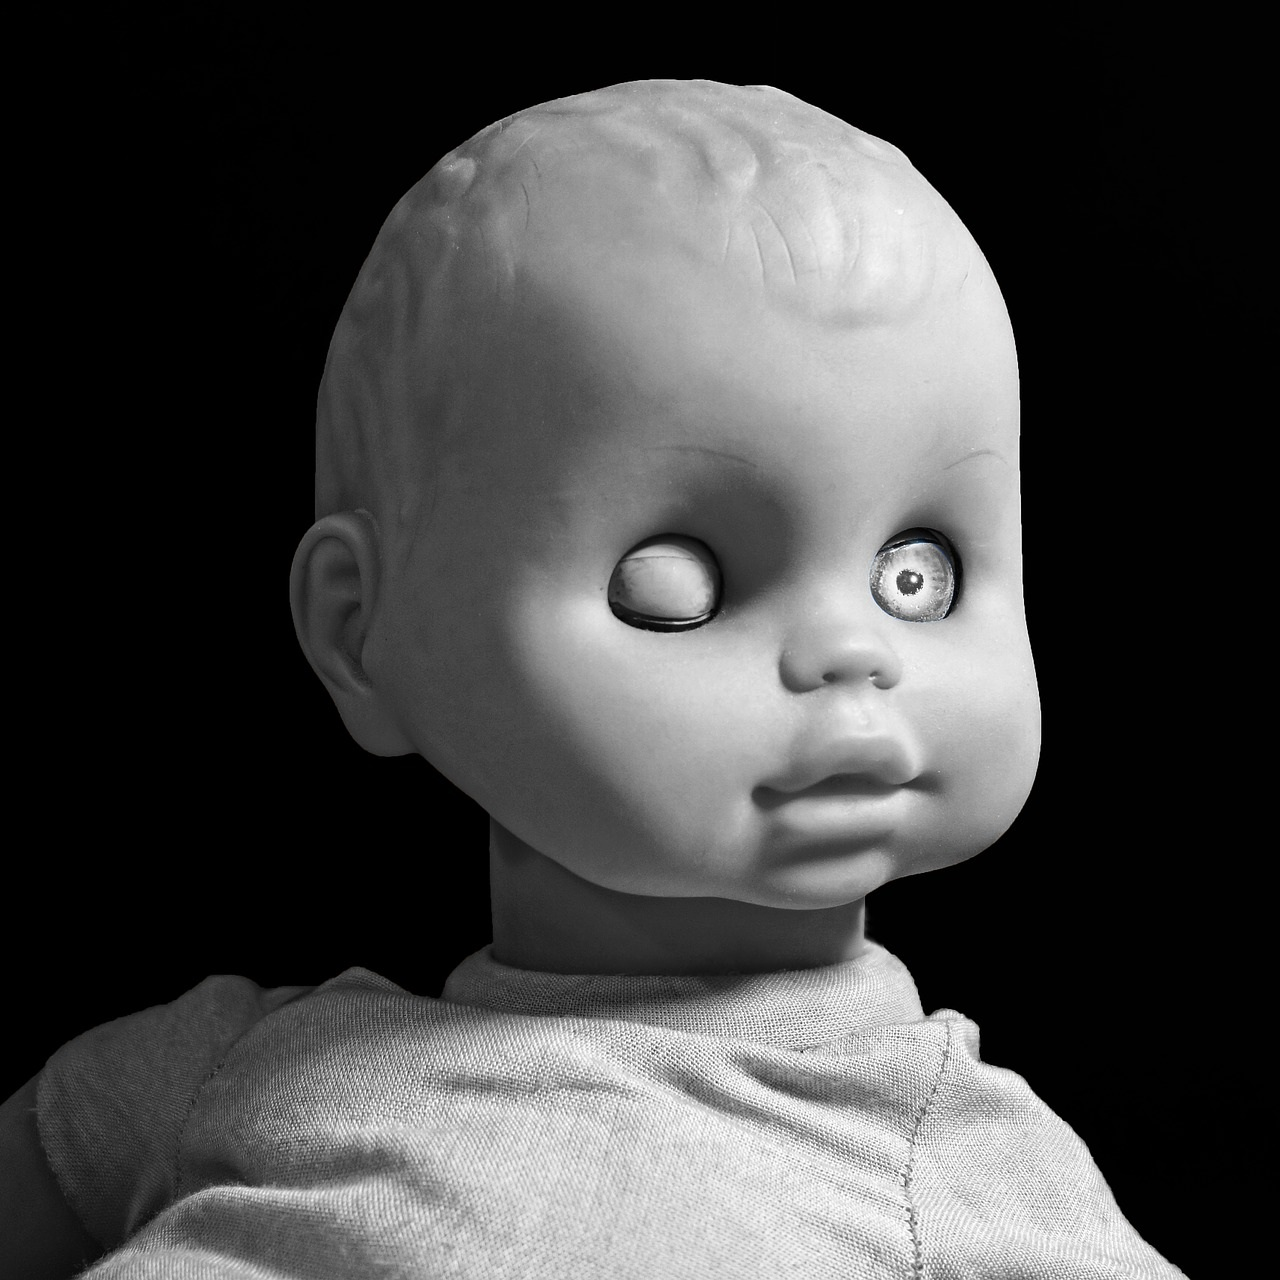 Creepy dolls are a great example of The Uncanny Valley